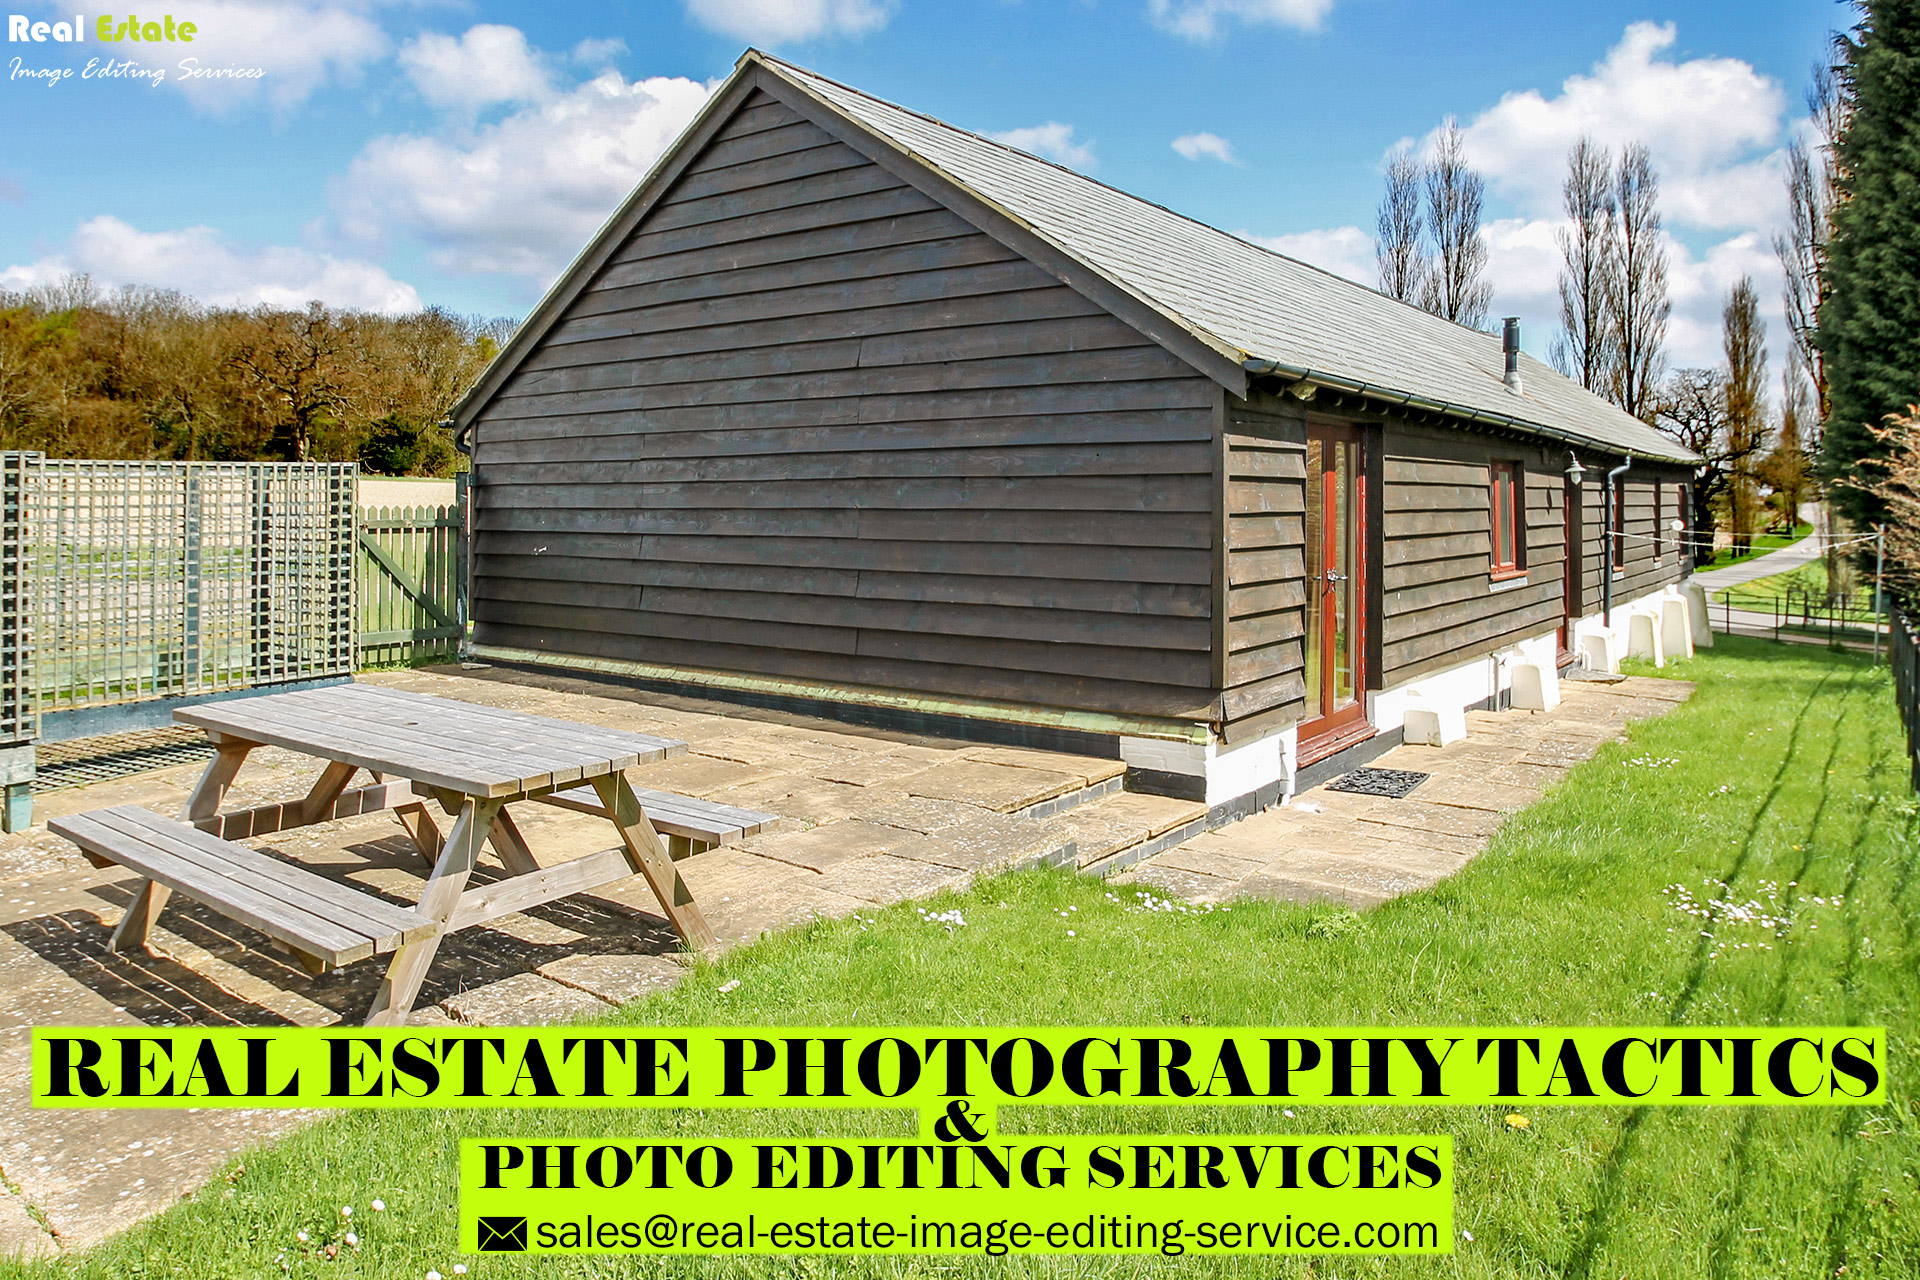 Property Photo Editing Services